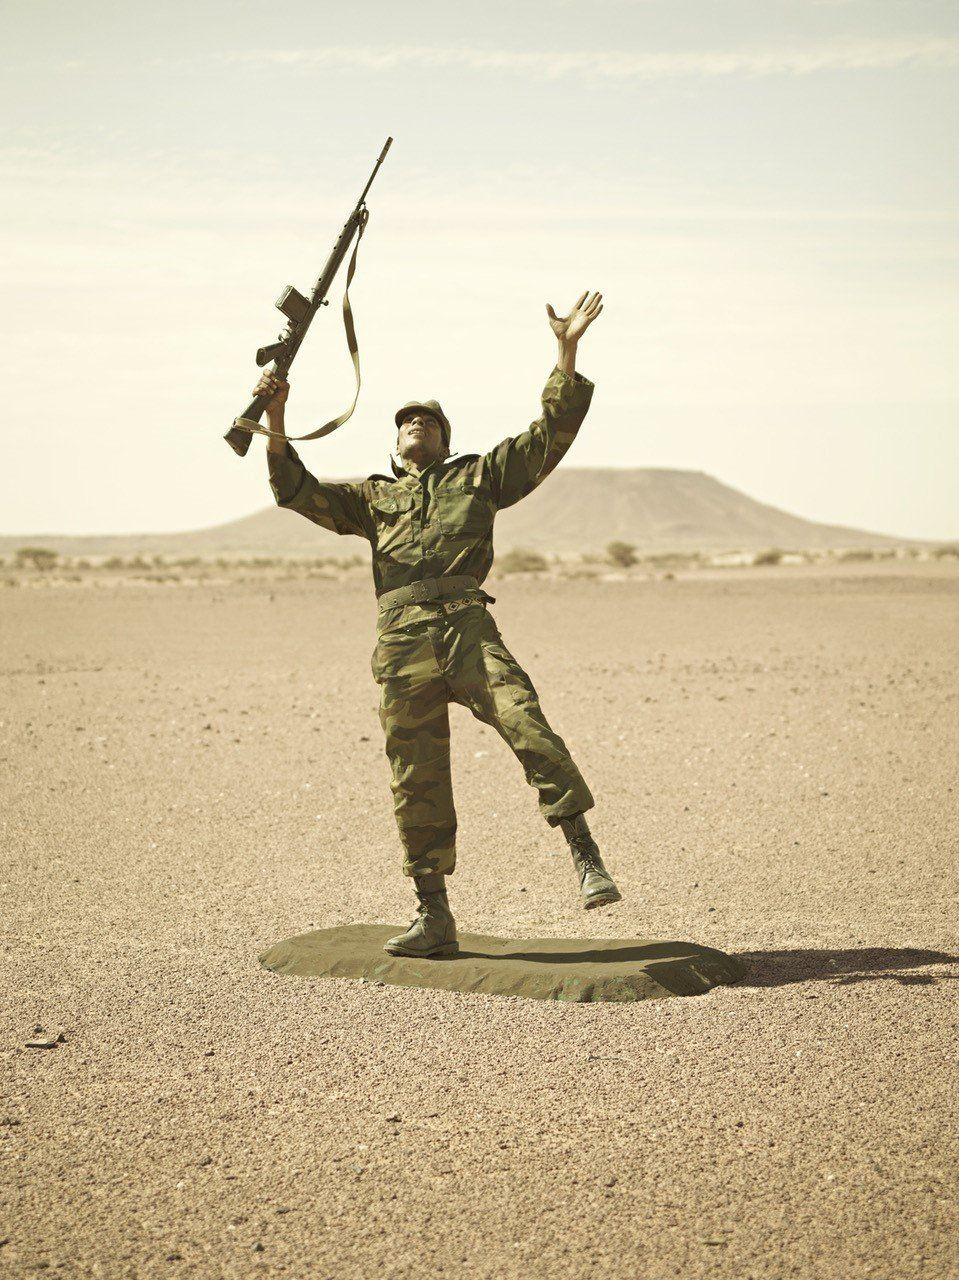 A soldier outdoors posing with his hand and gun towards the sky